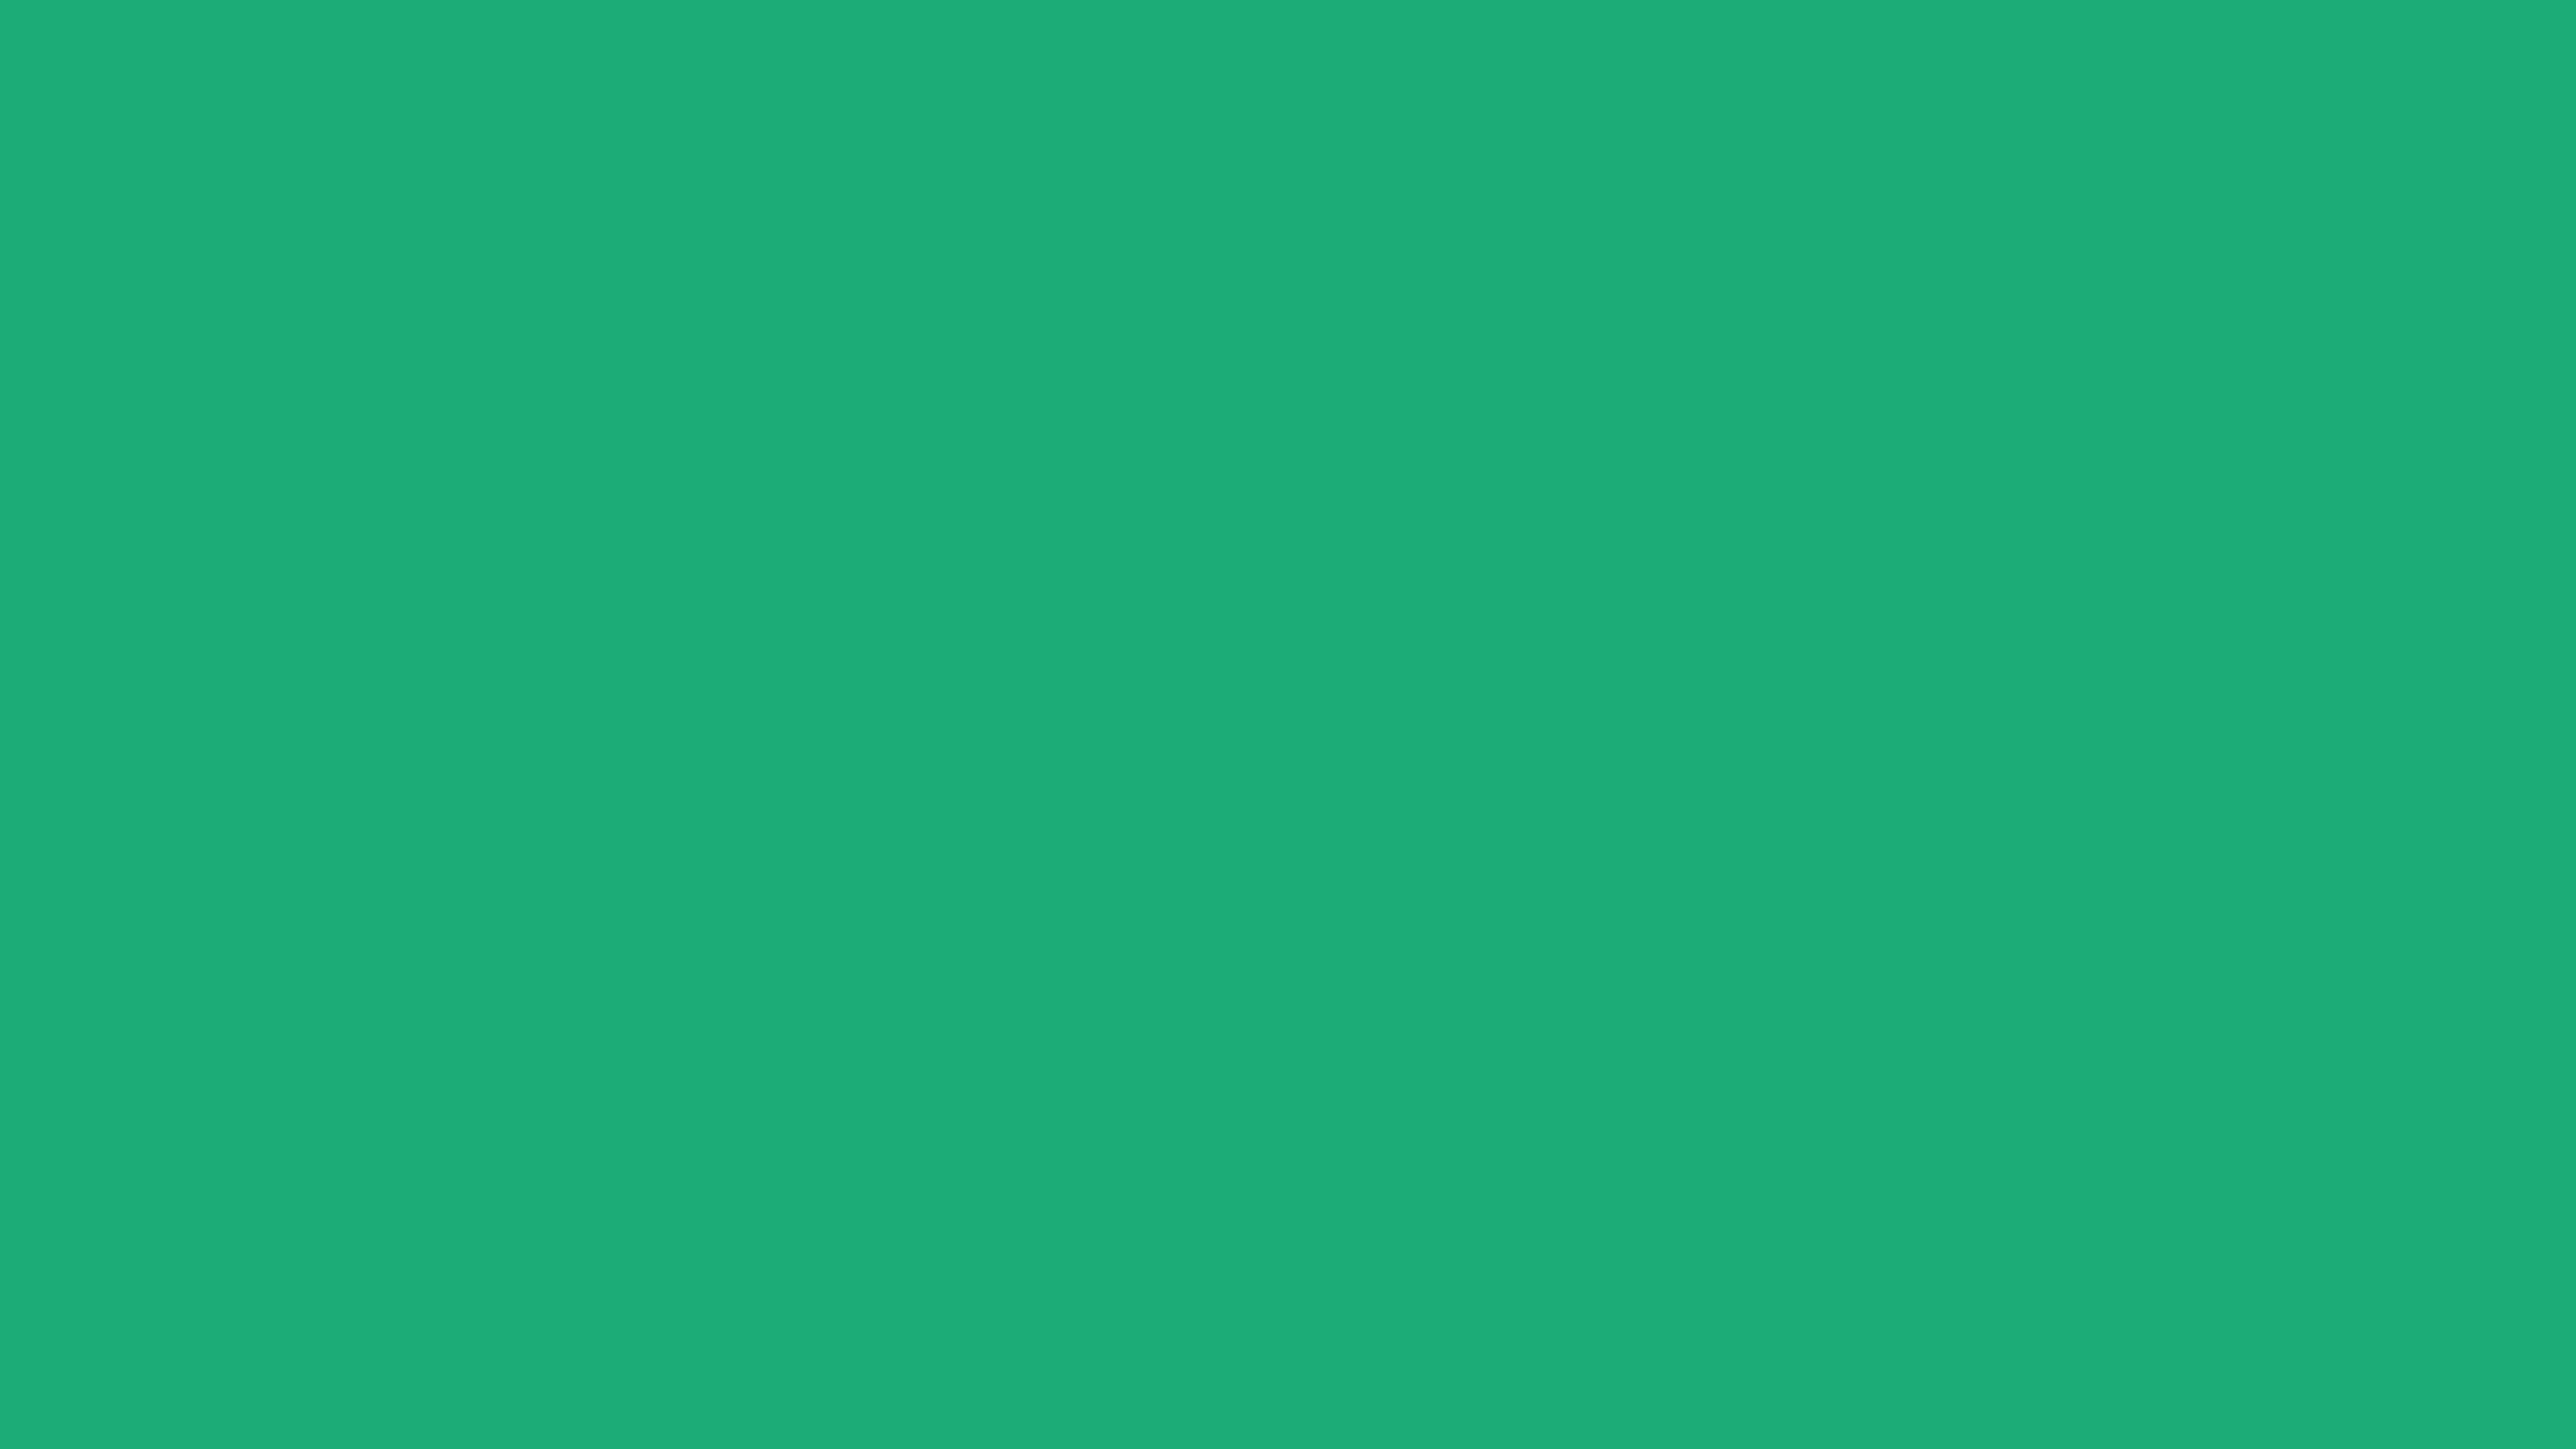 5120x2880 Green Crayola Solid Color Background